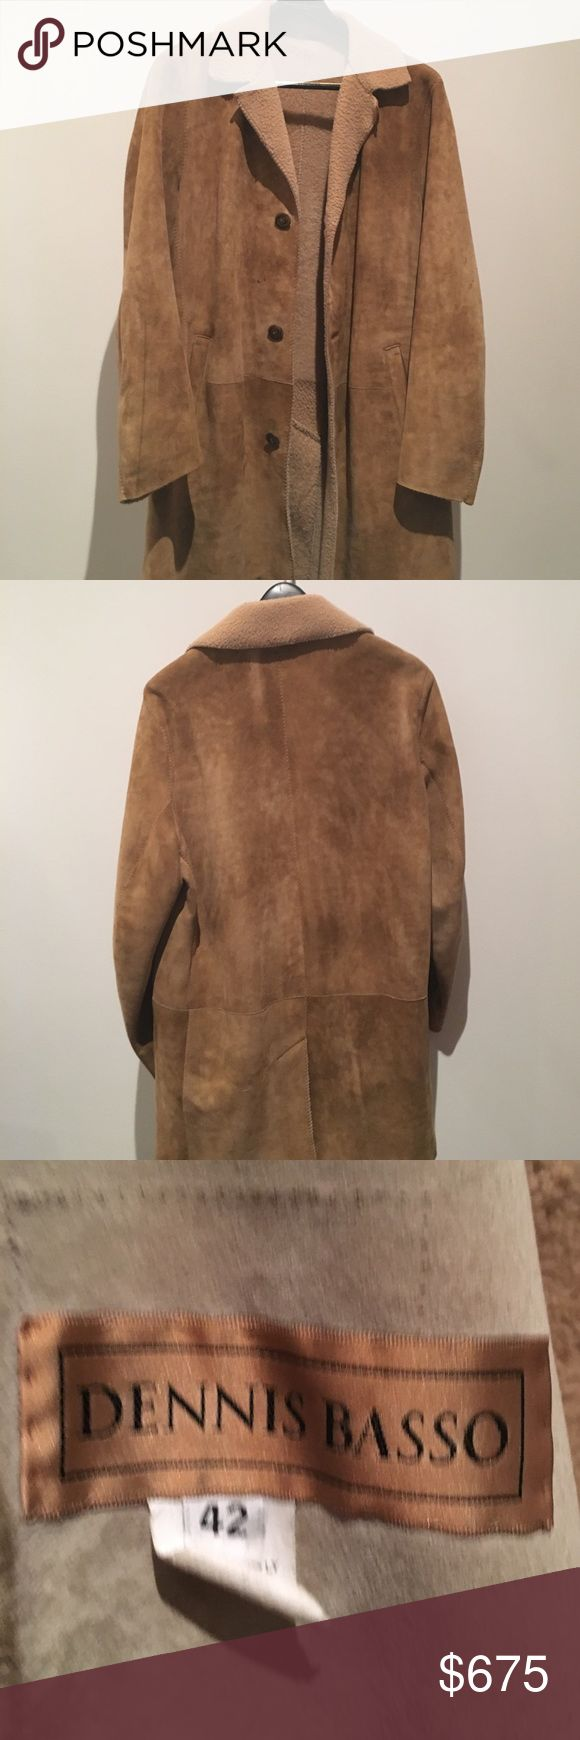 Dennis Basso Shearling Coat Tan Dennis Basso Shearling Coat featuring dual pockets at sides and button closures at front. Made in Italy. Dennis Basso Jackets & Coats